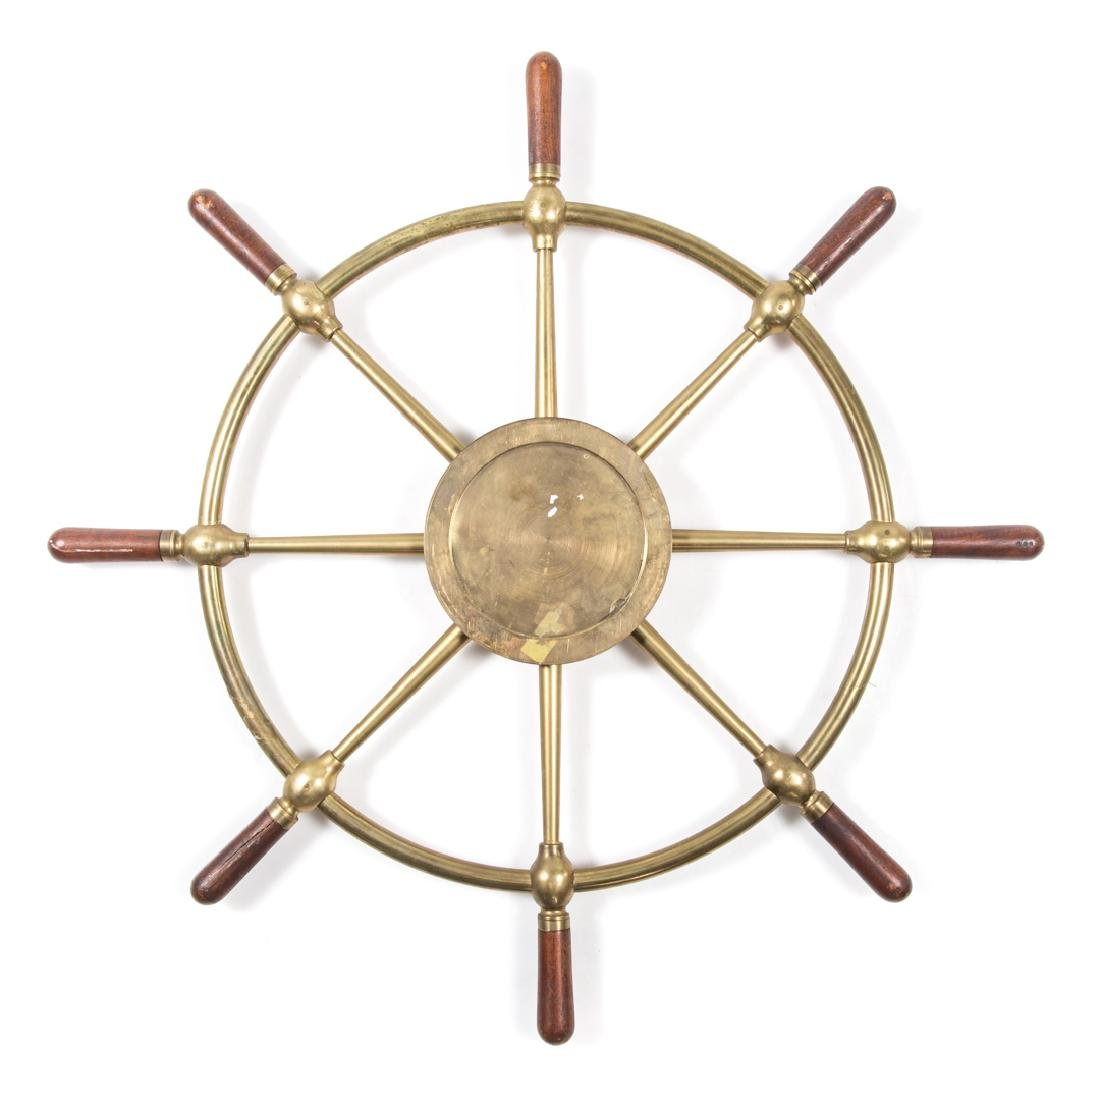 Brass and wood ships wheel clock case - 2